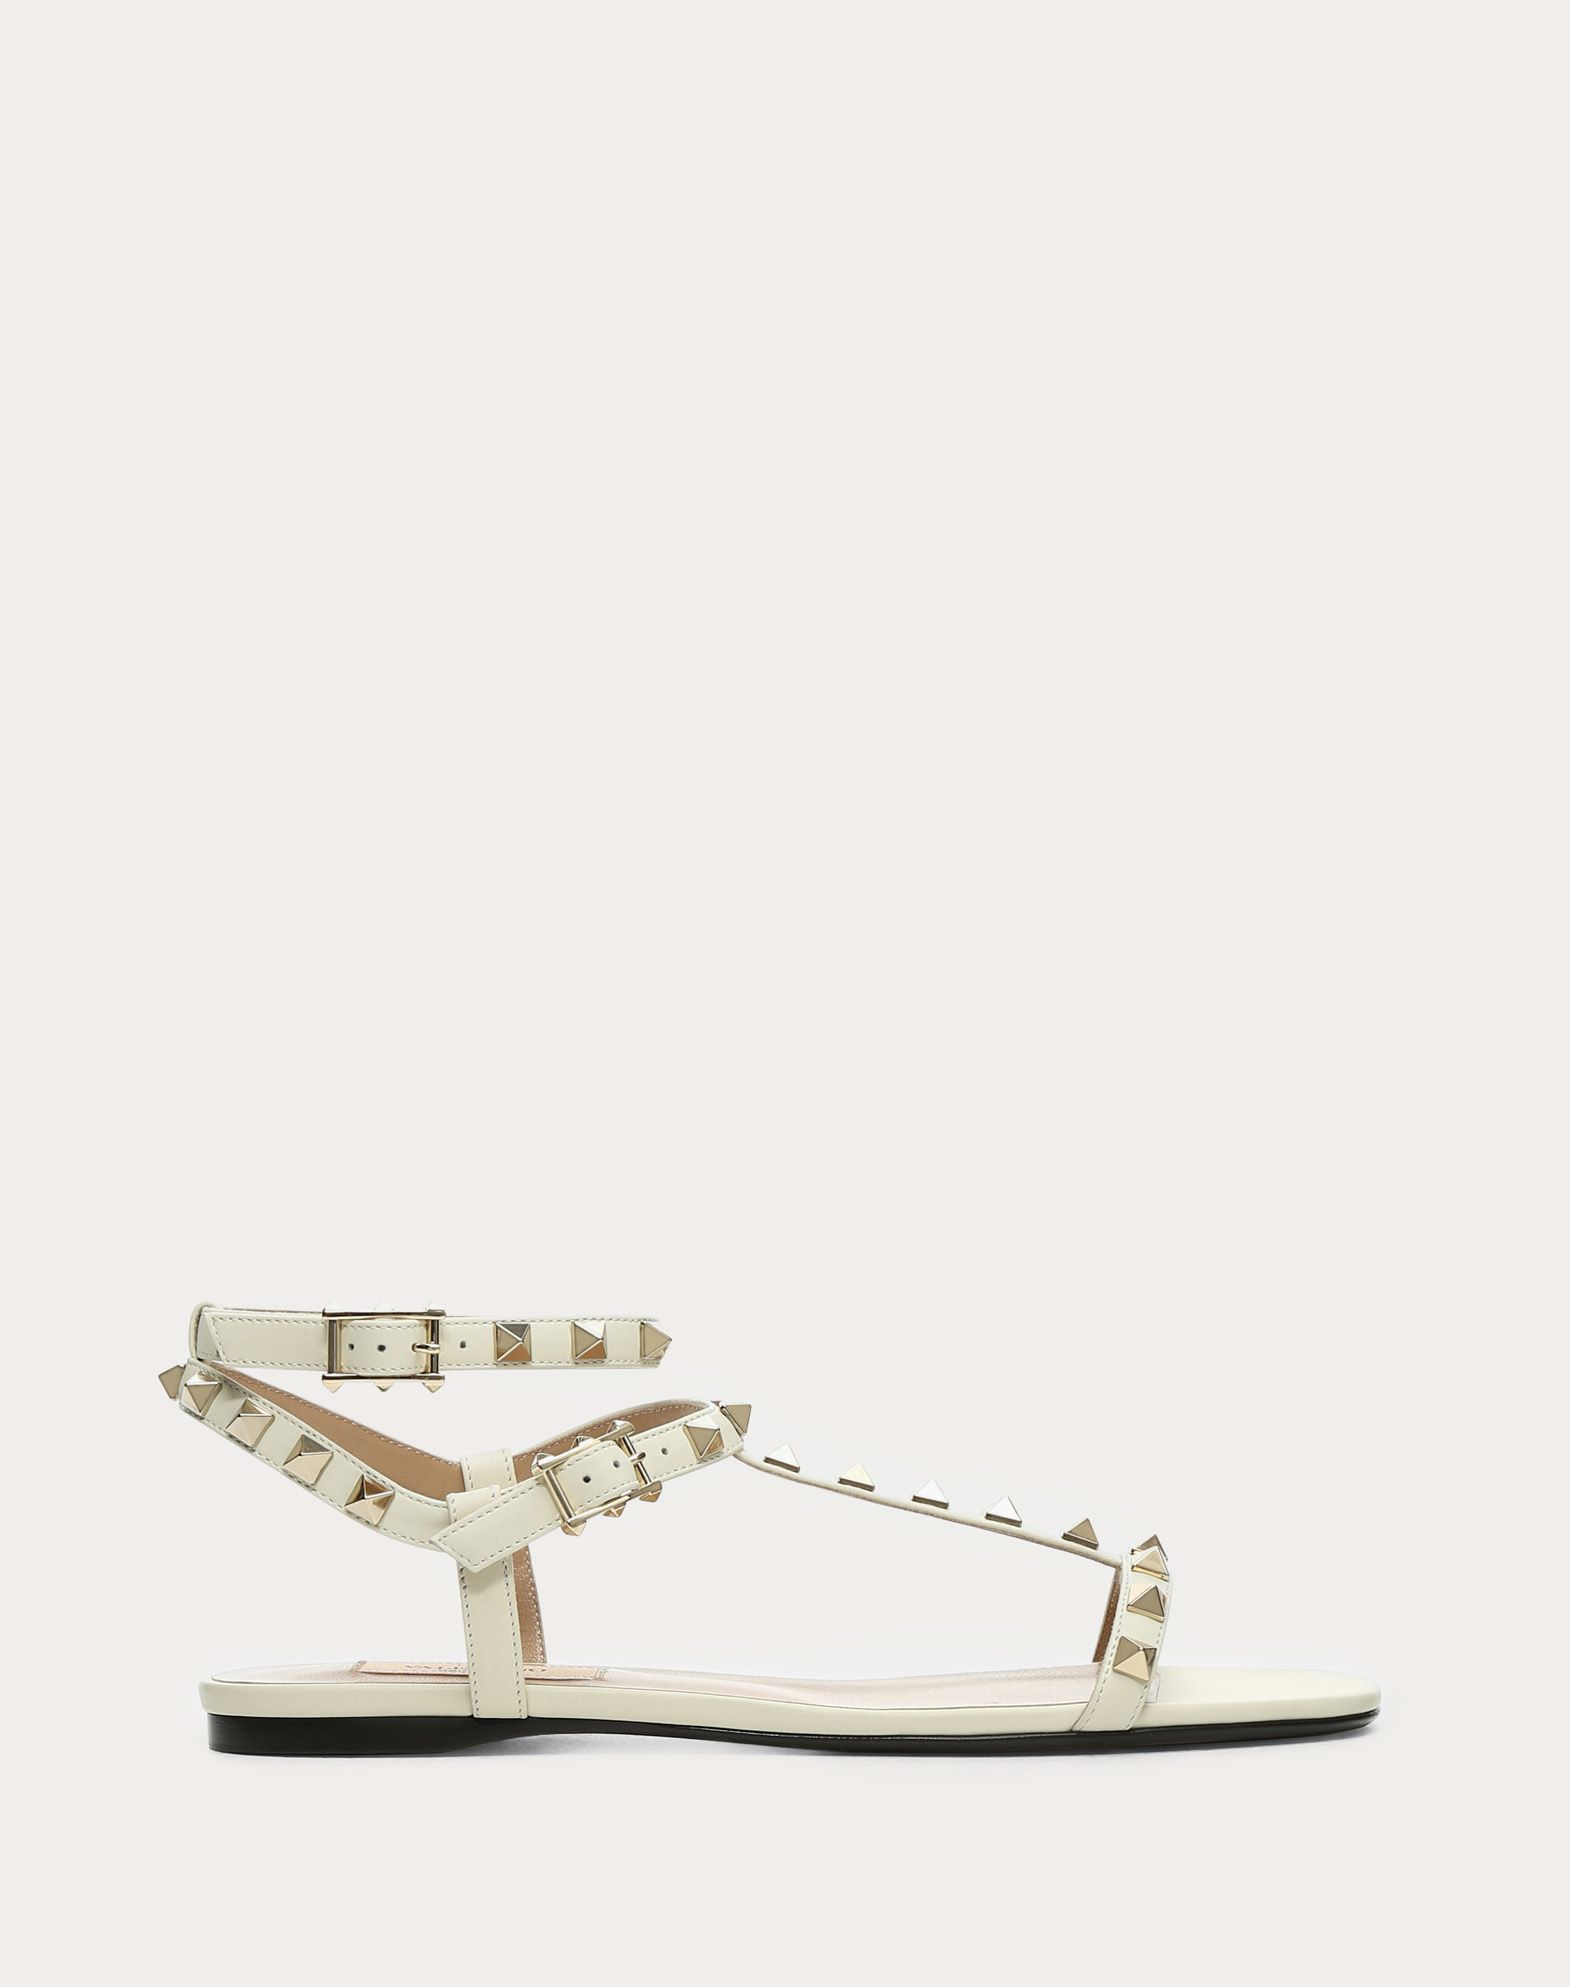 VALENTINO Studded Square toeline Solid color Leather sole Buckling ankle strap closure  45390910nh